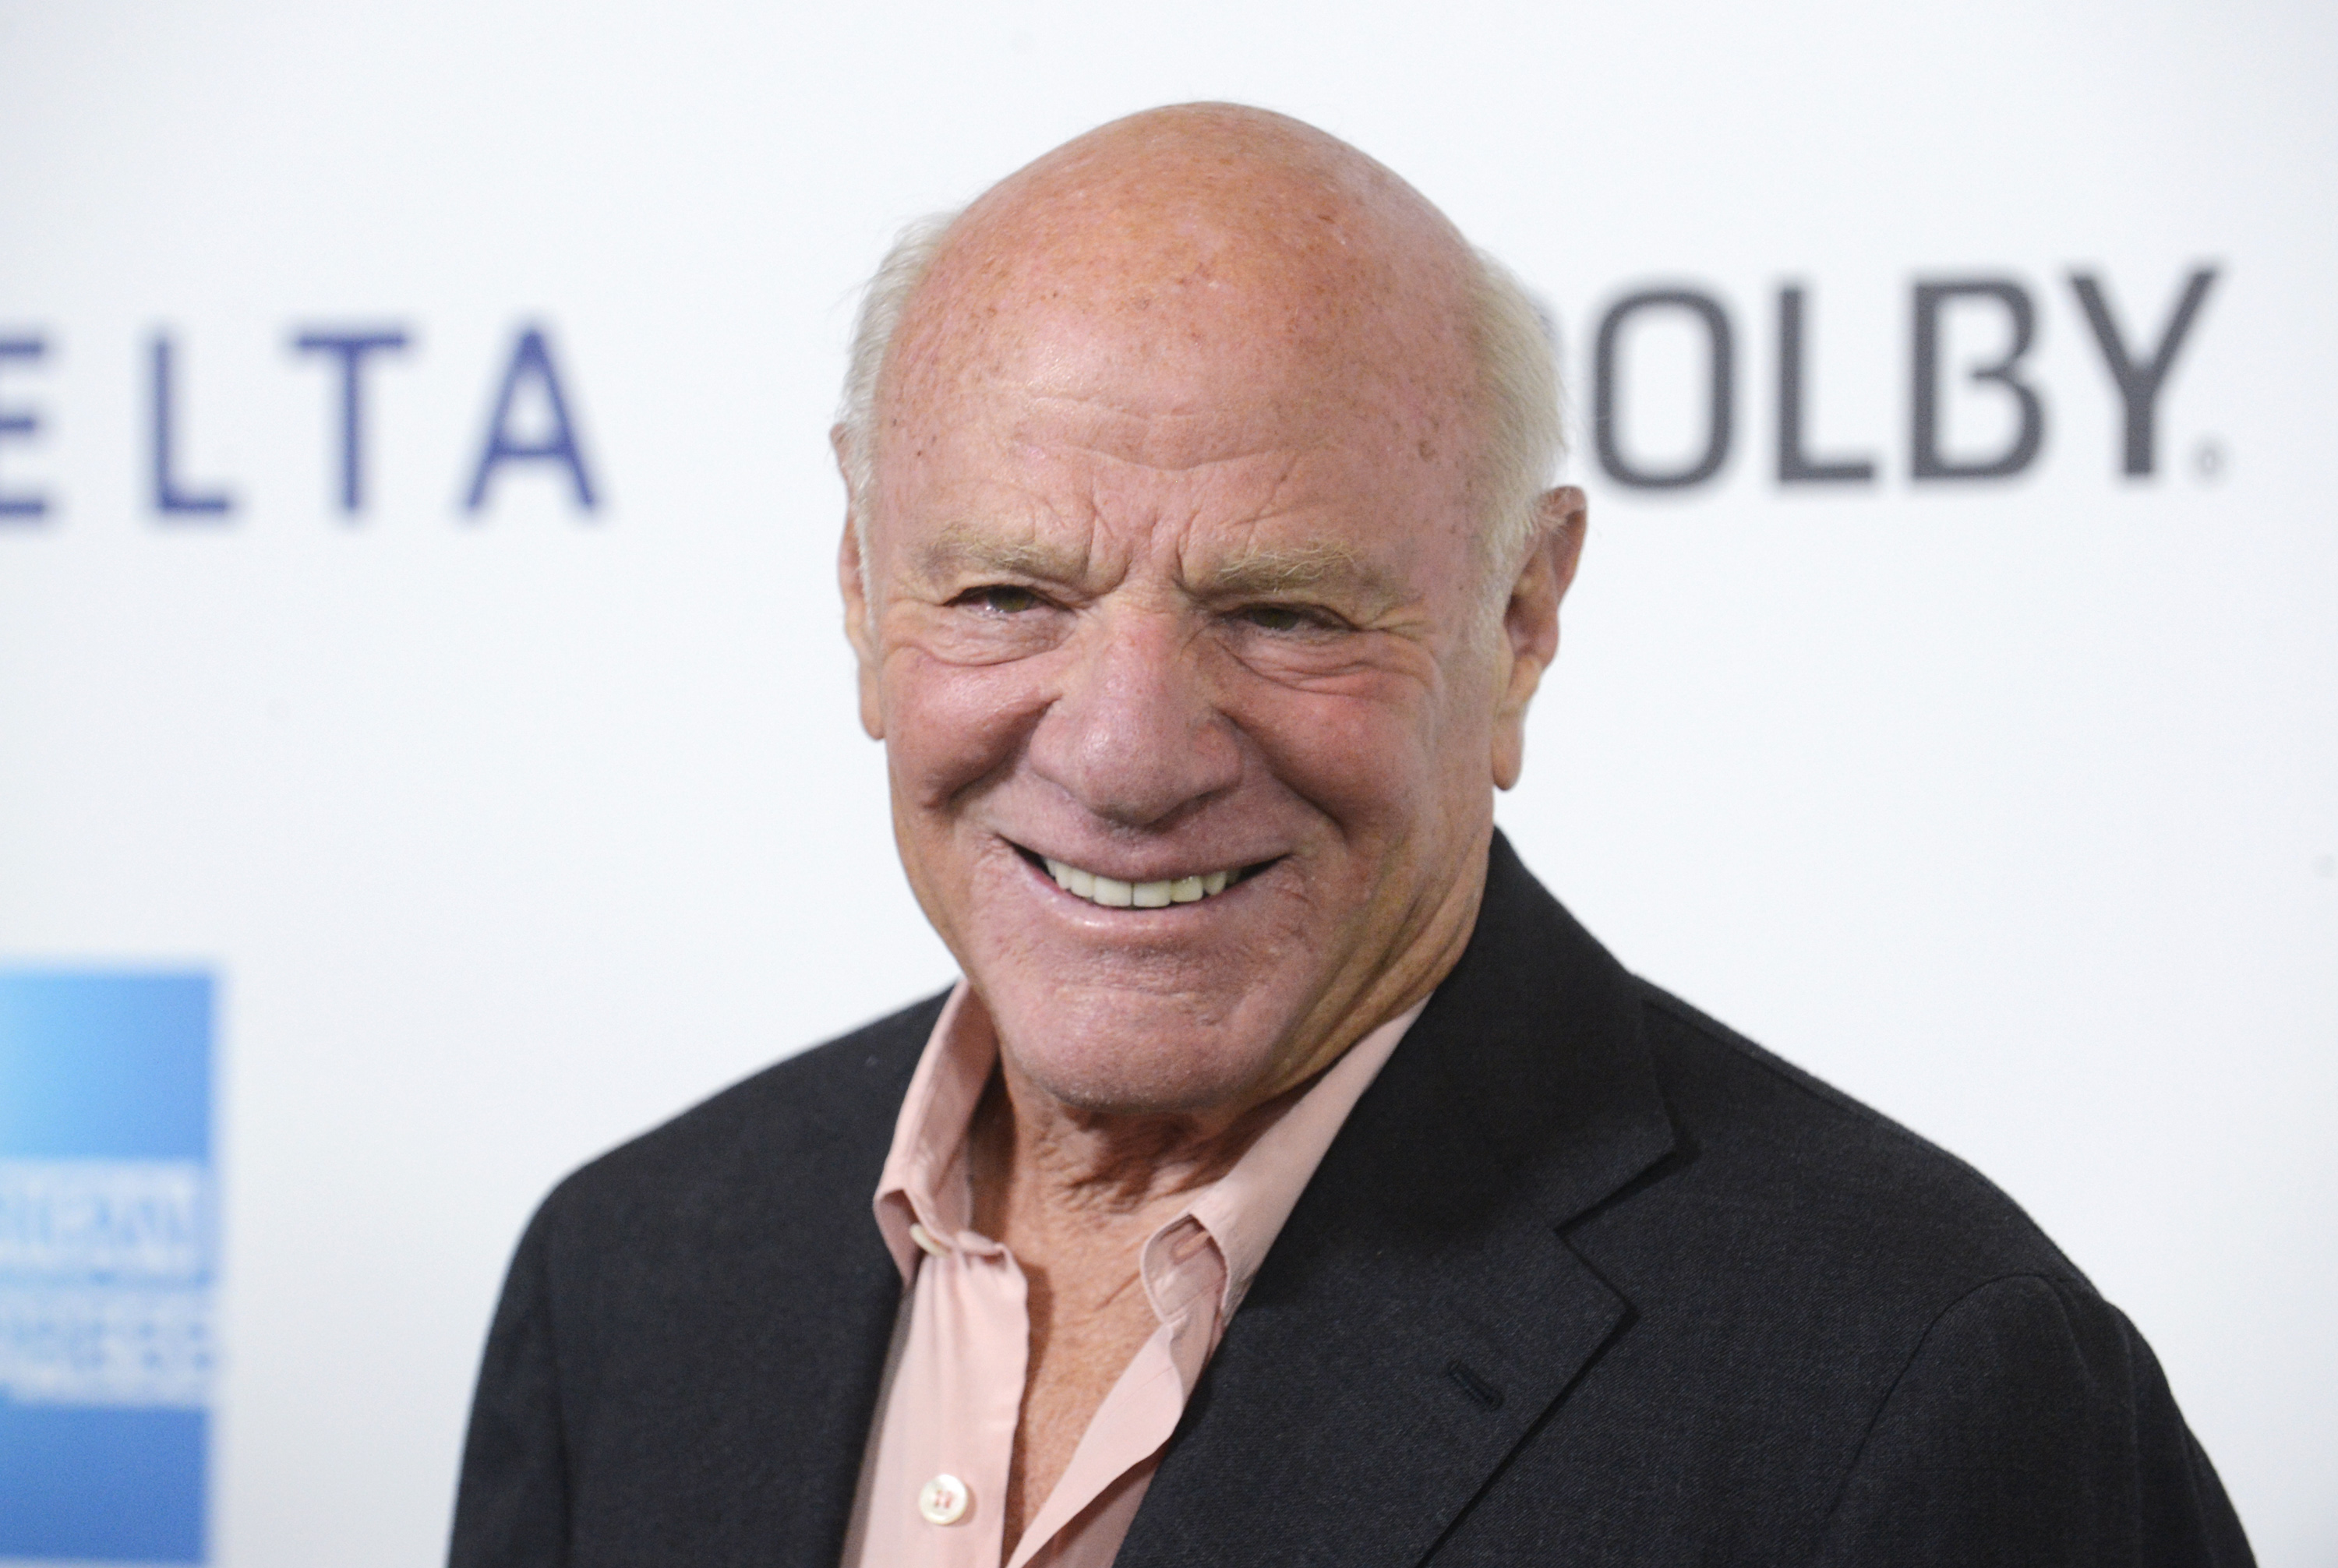 Media tycoon Barry Diller.